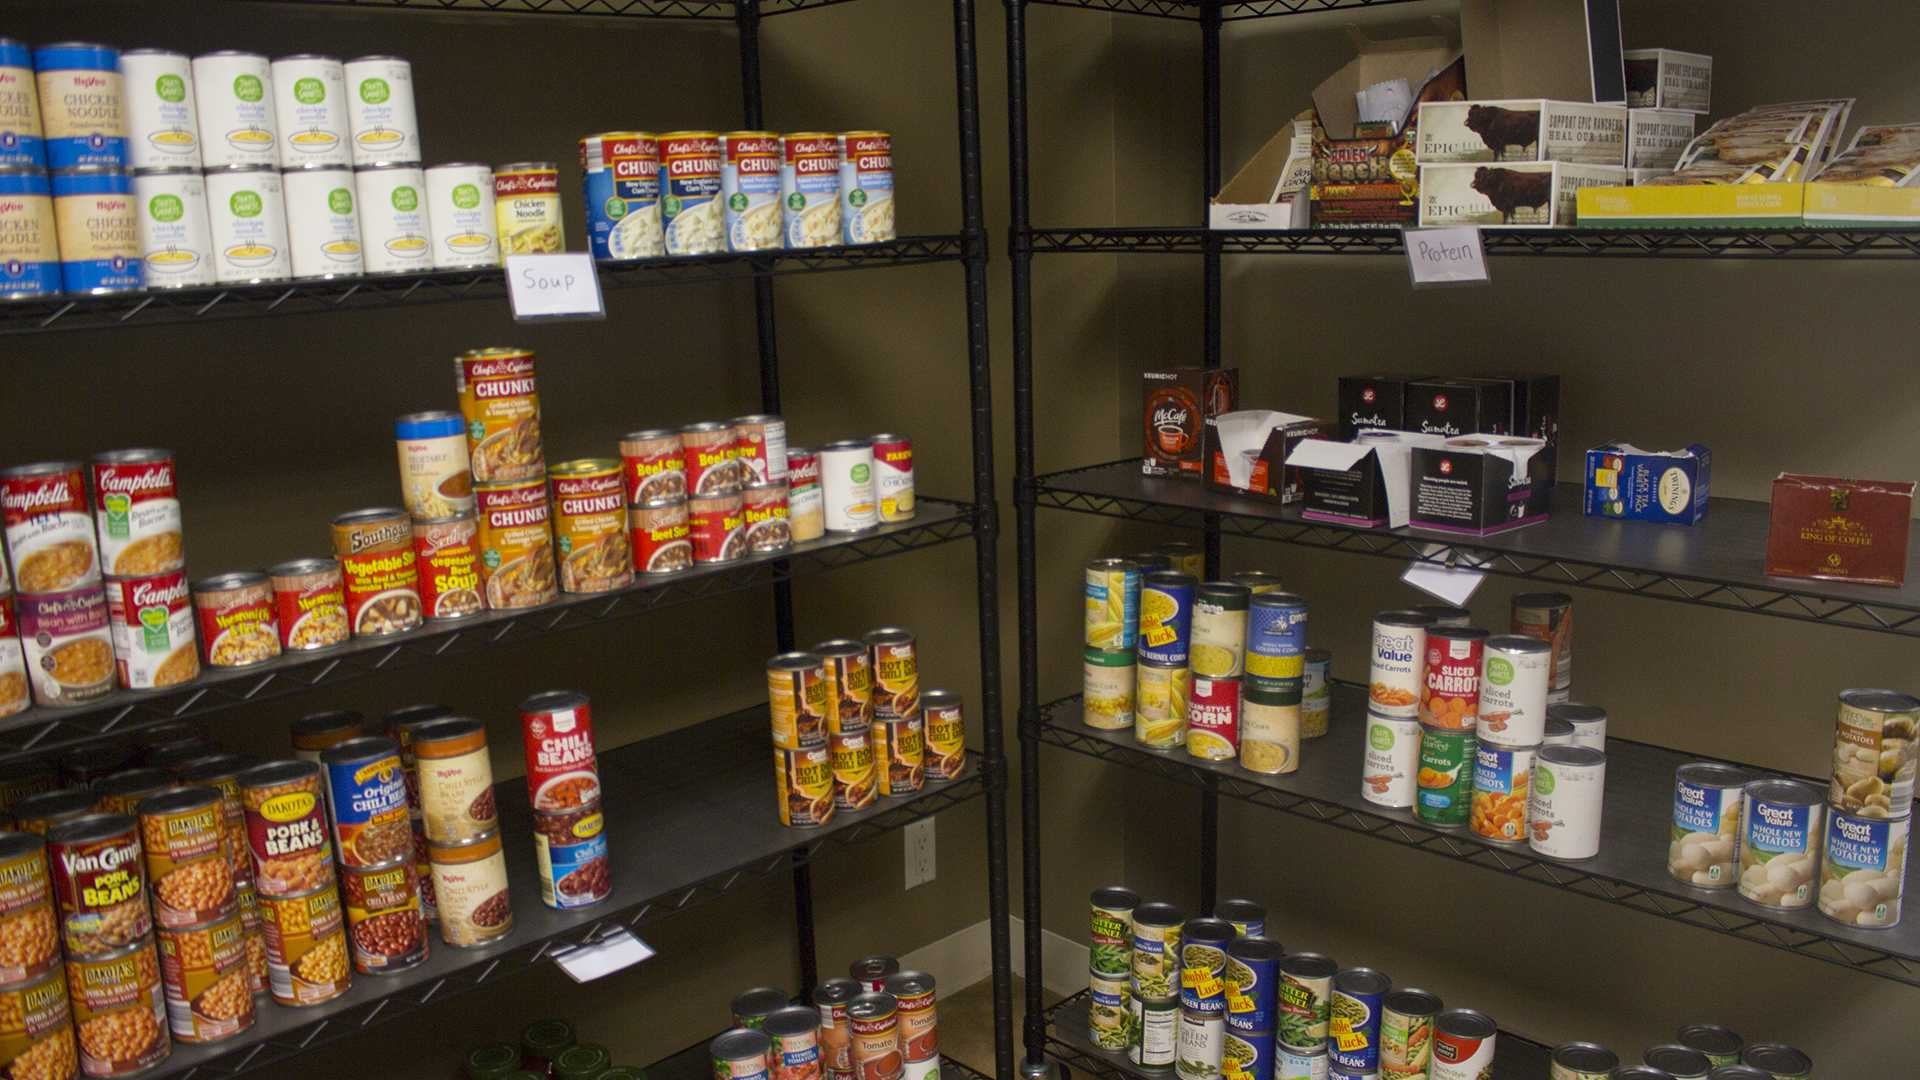 Food is shown in the Food Pantry in the IMU on Monday, Sep. 4, 2017. The Food Pantry is located in Room 209 in the IMU. (Lily Smith/The Daily Iowan)